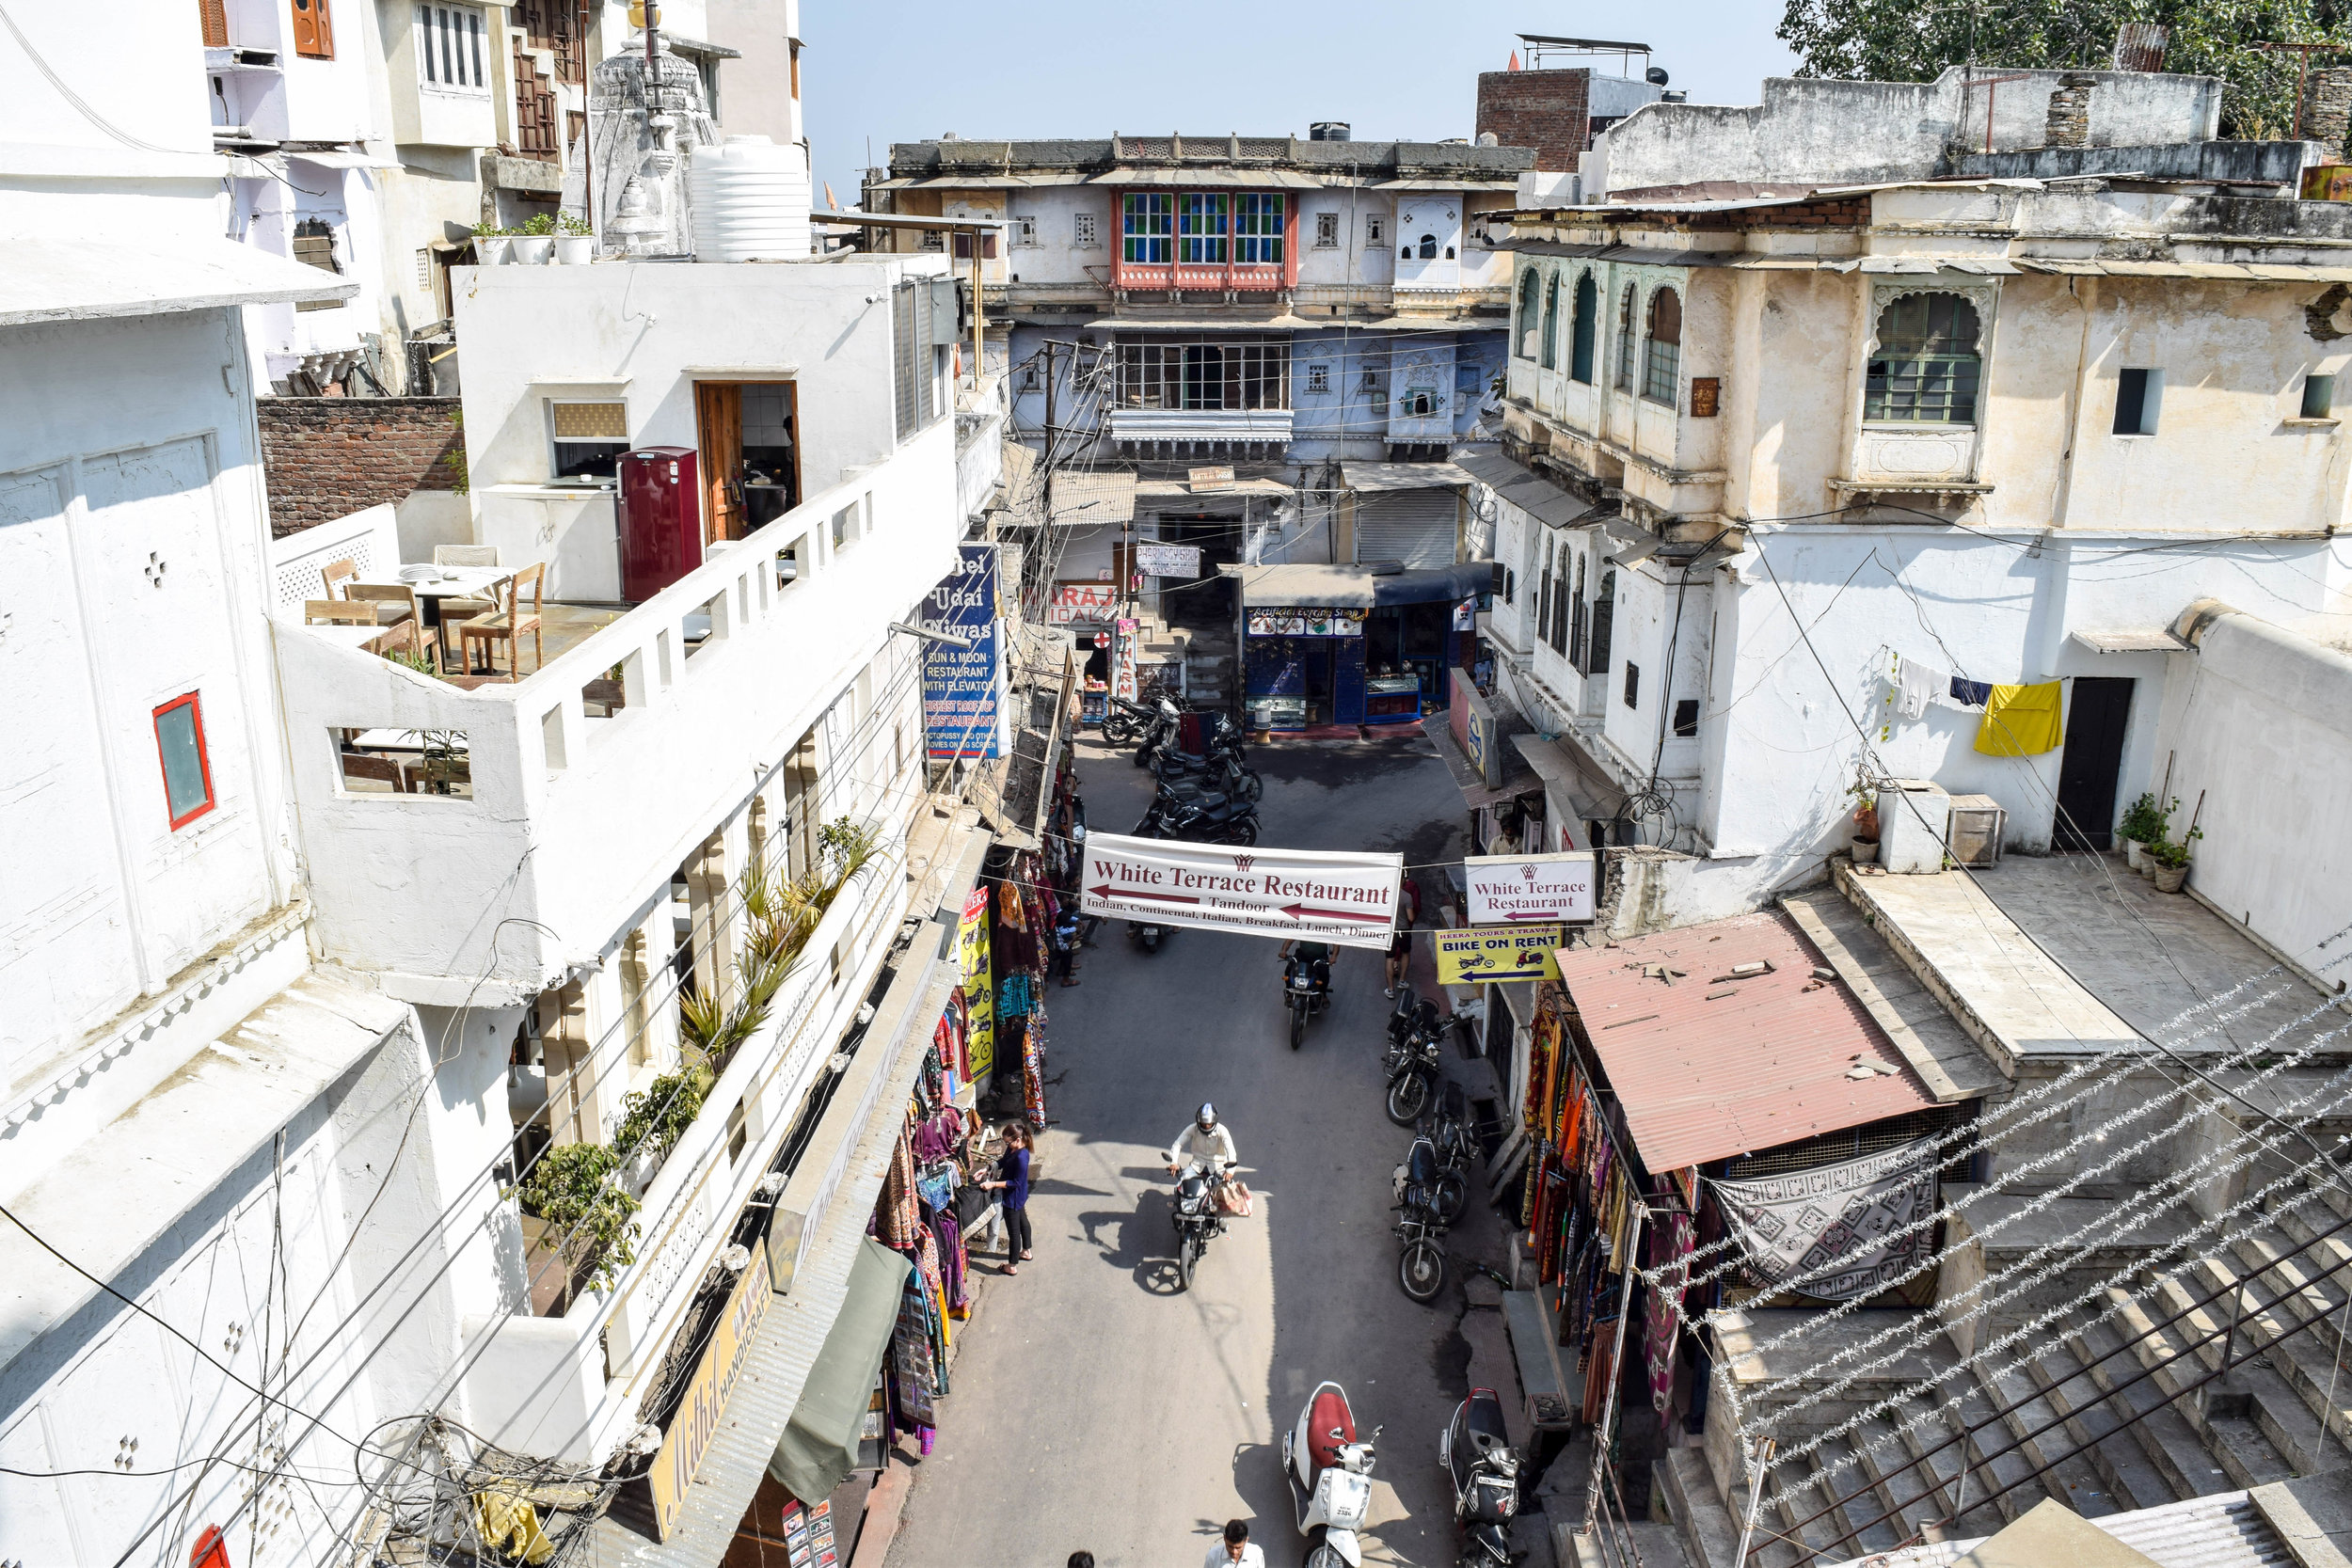 This is one of the wider streets in Udaipur.